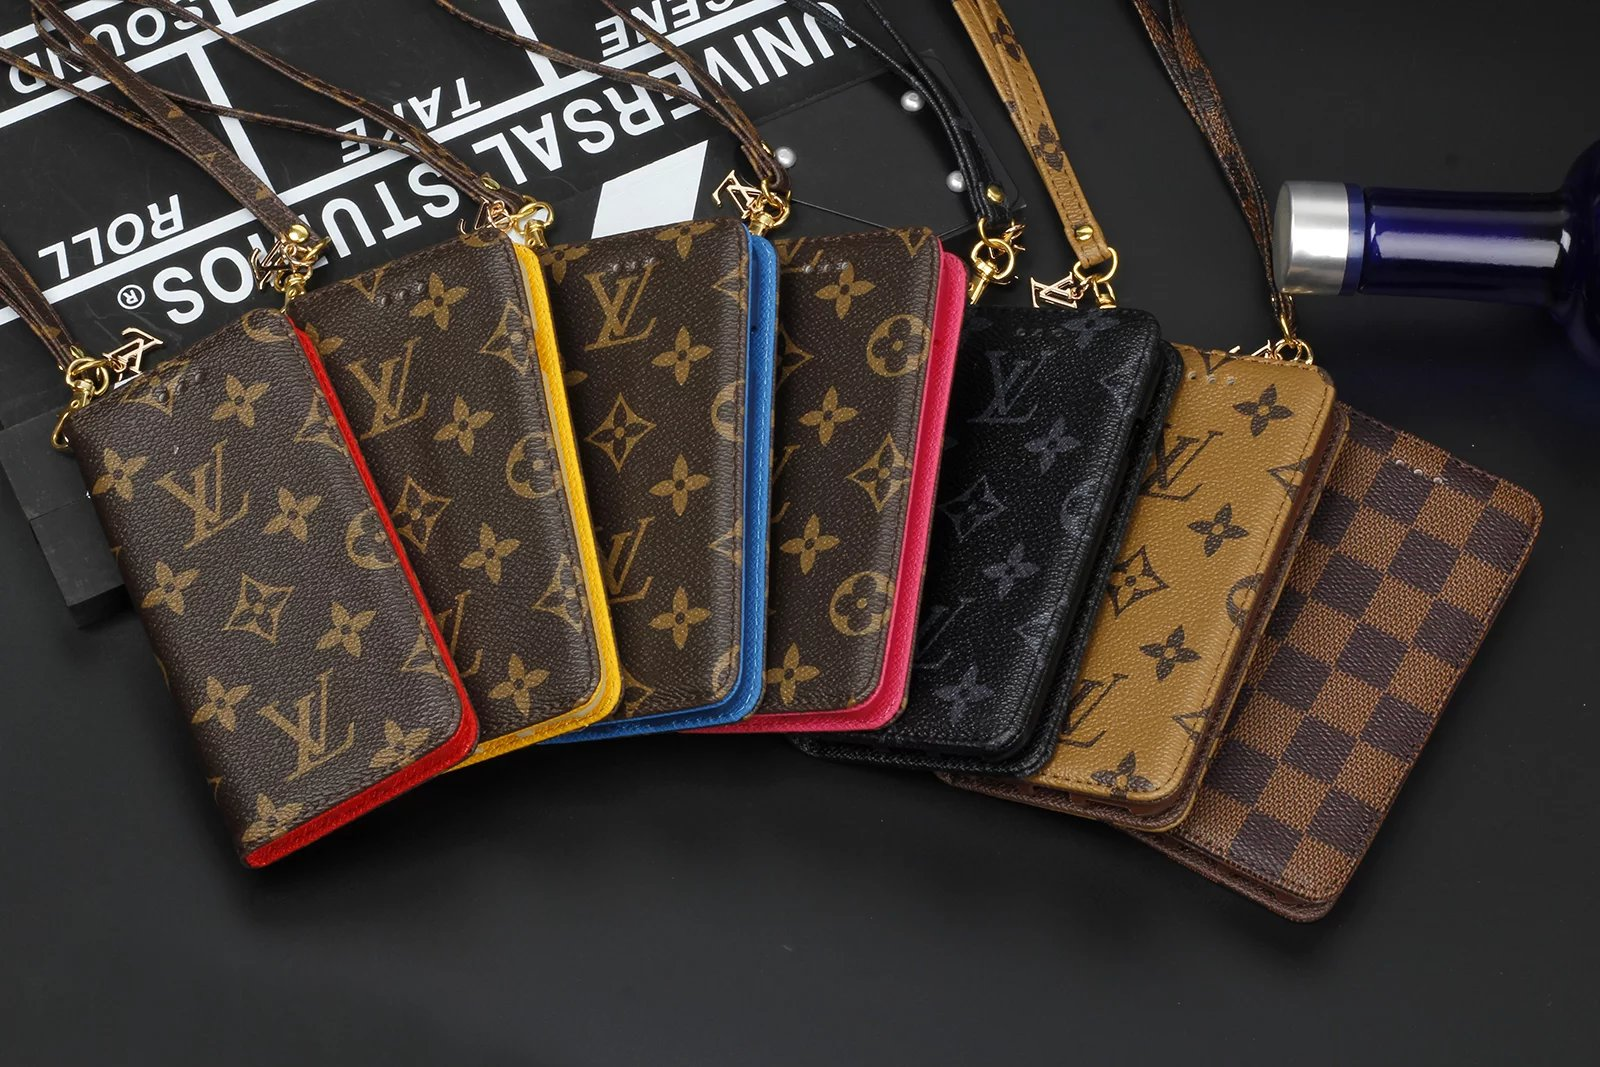 handyhüllen für iphone iphone klapphülle Louis Vuitton iphone6 hülle iphone 6 virenschutz iphone 6 leder ca6 apple cover handy 6lbst gestalten iphone geldbeutel iphone 6 hardca6 6lber gestalten wann kommt das neue iphone